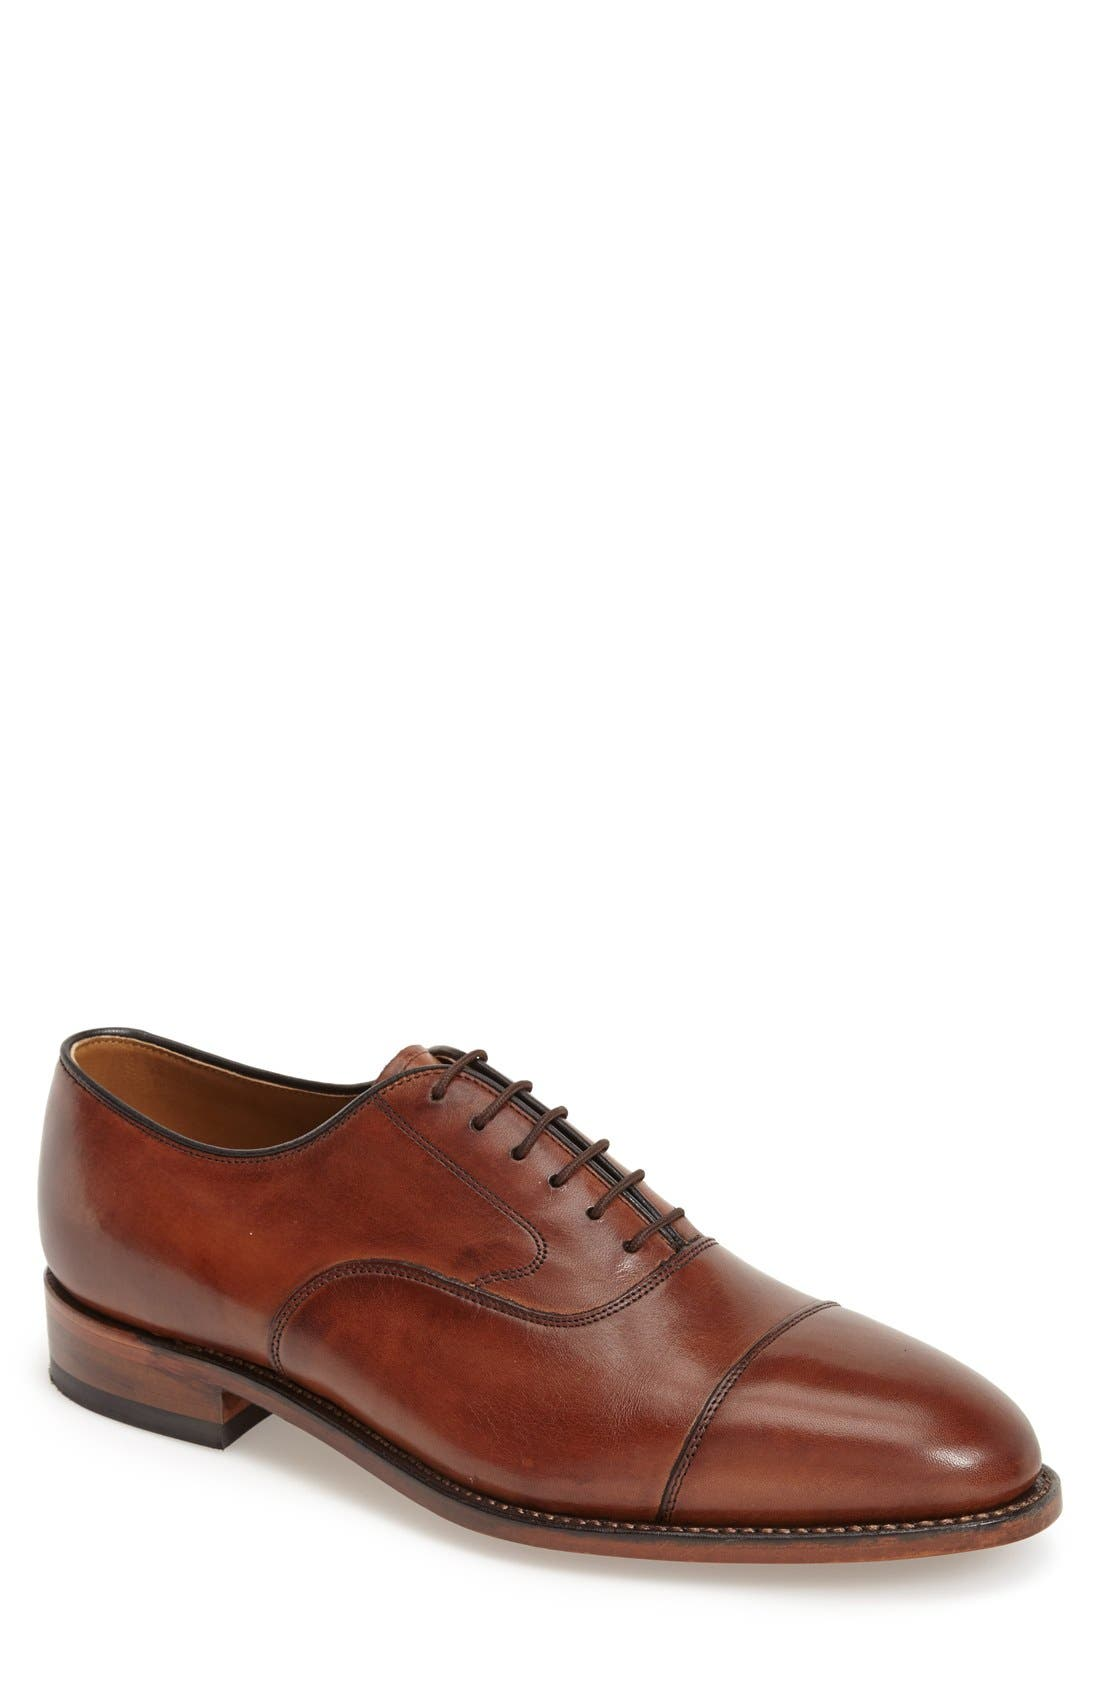 'Melton' Oxford,                         Main,                         color, TAN